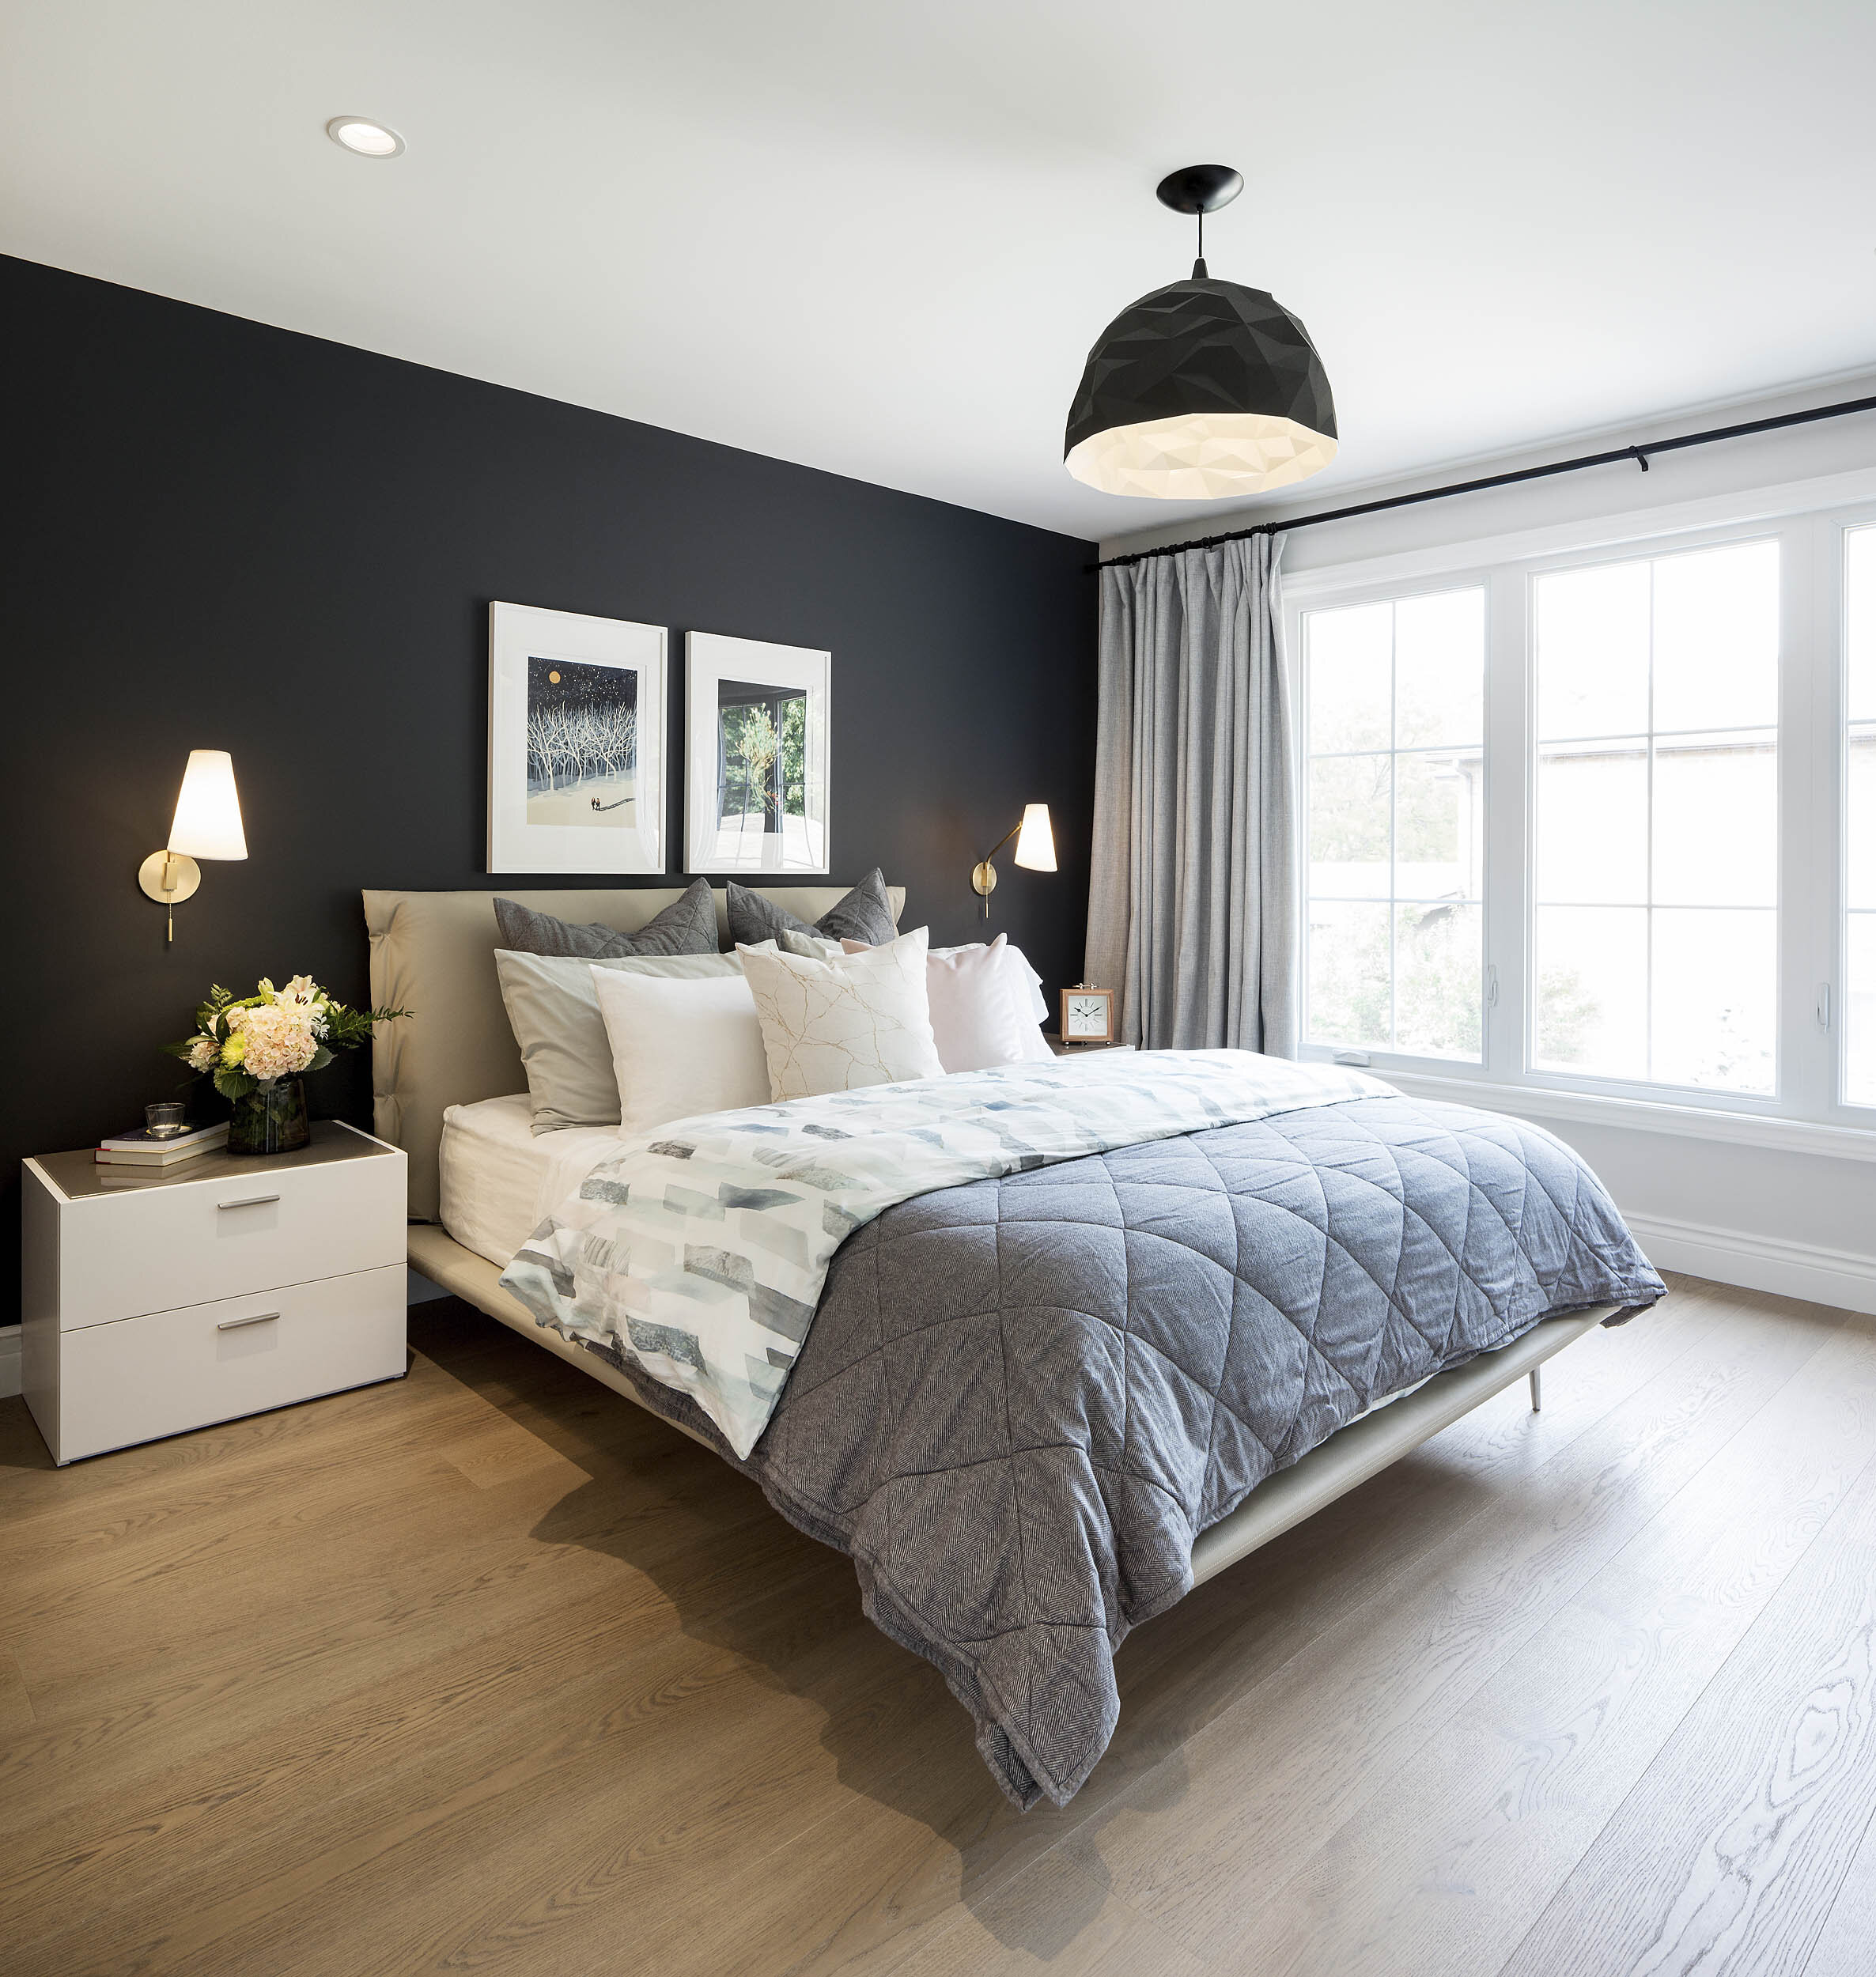 Toronto Bedroom Interior Photography by Worker Bee Supply for Danielle Campbell Design